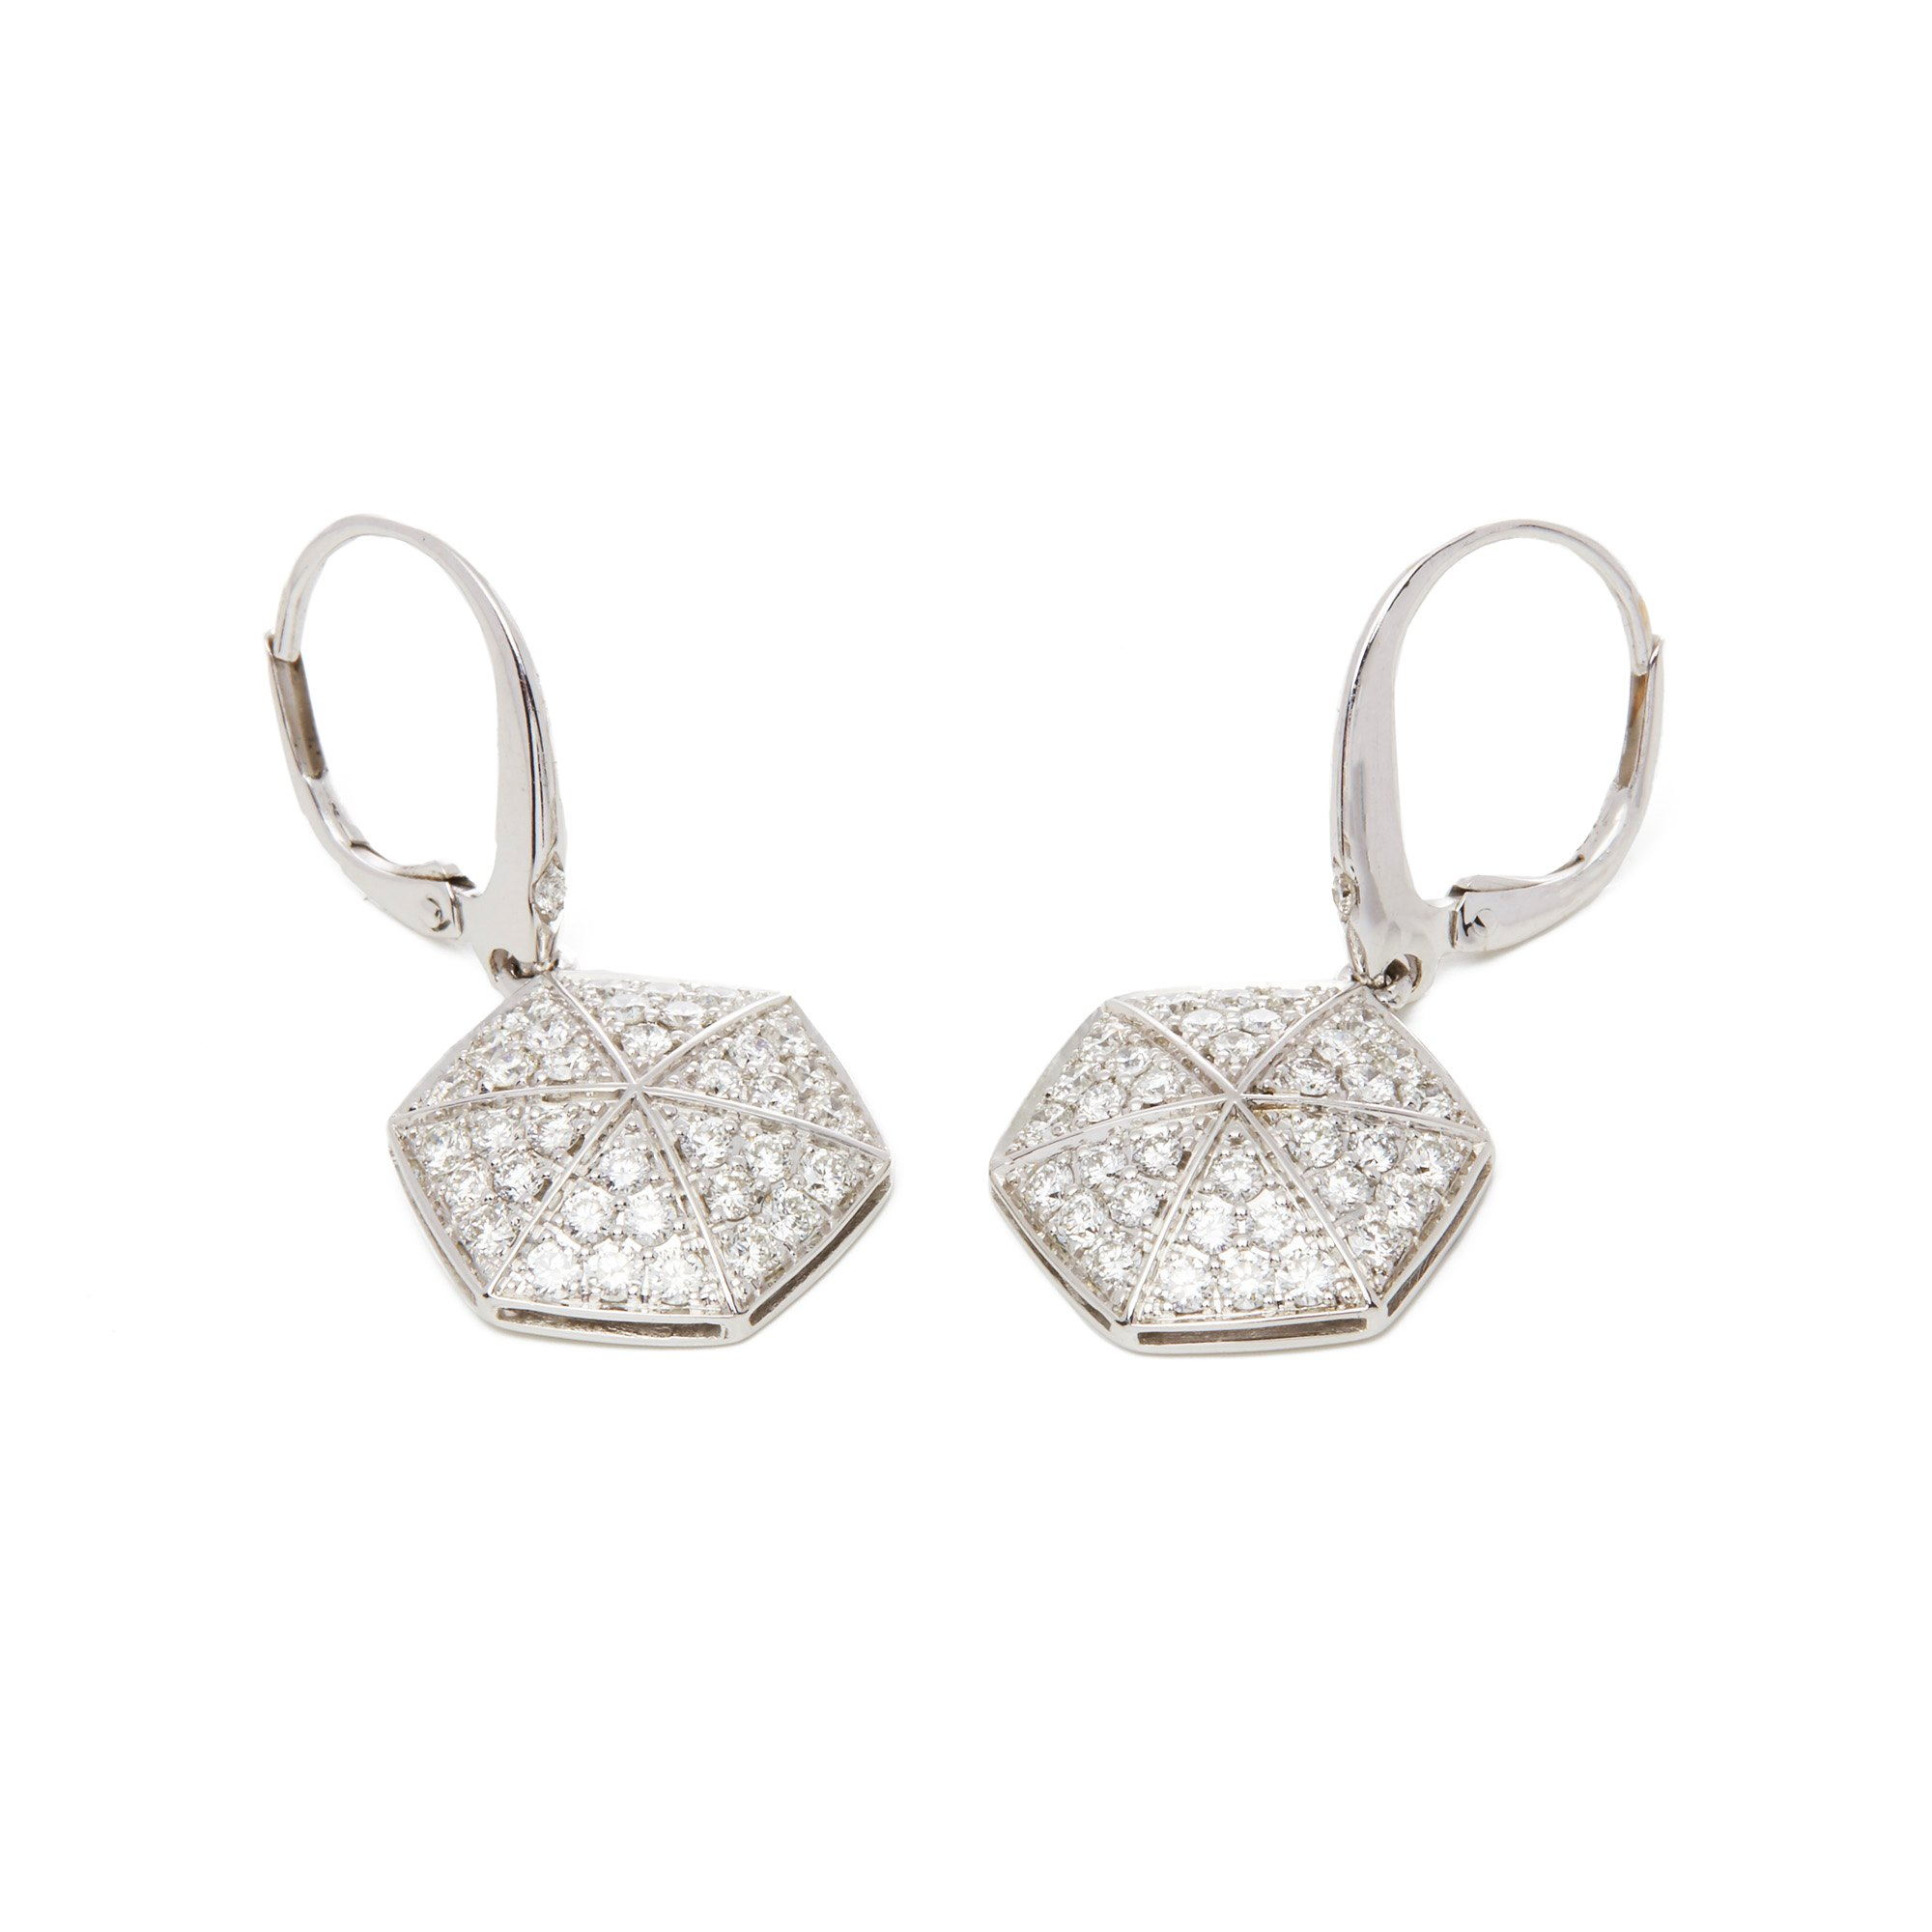 Stephen Webster 18k White Gold Full Pave Diamond Deco Earrings